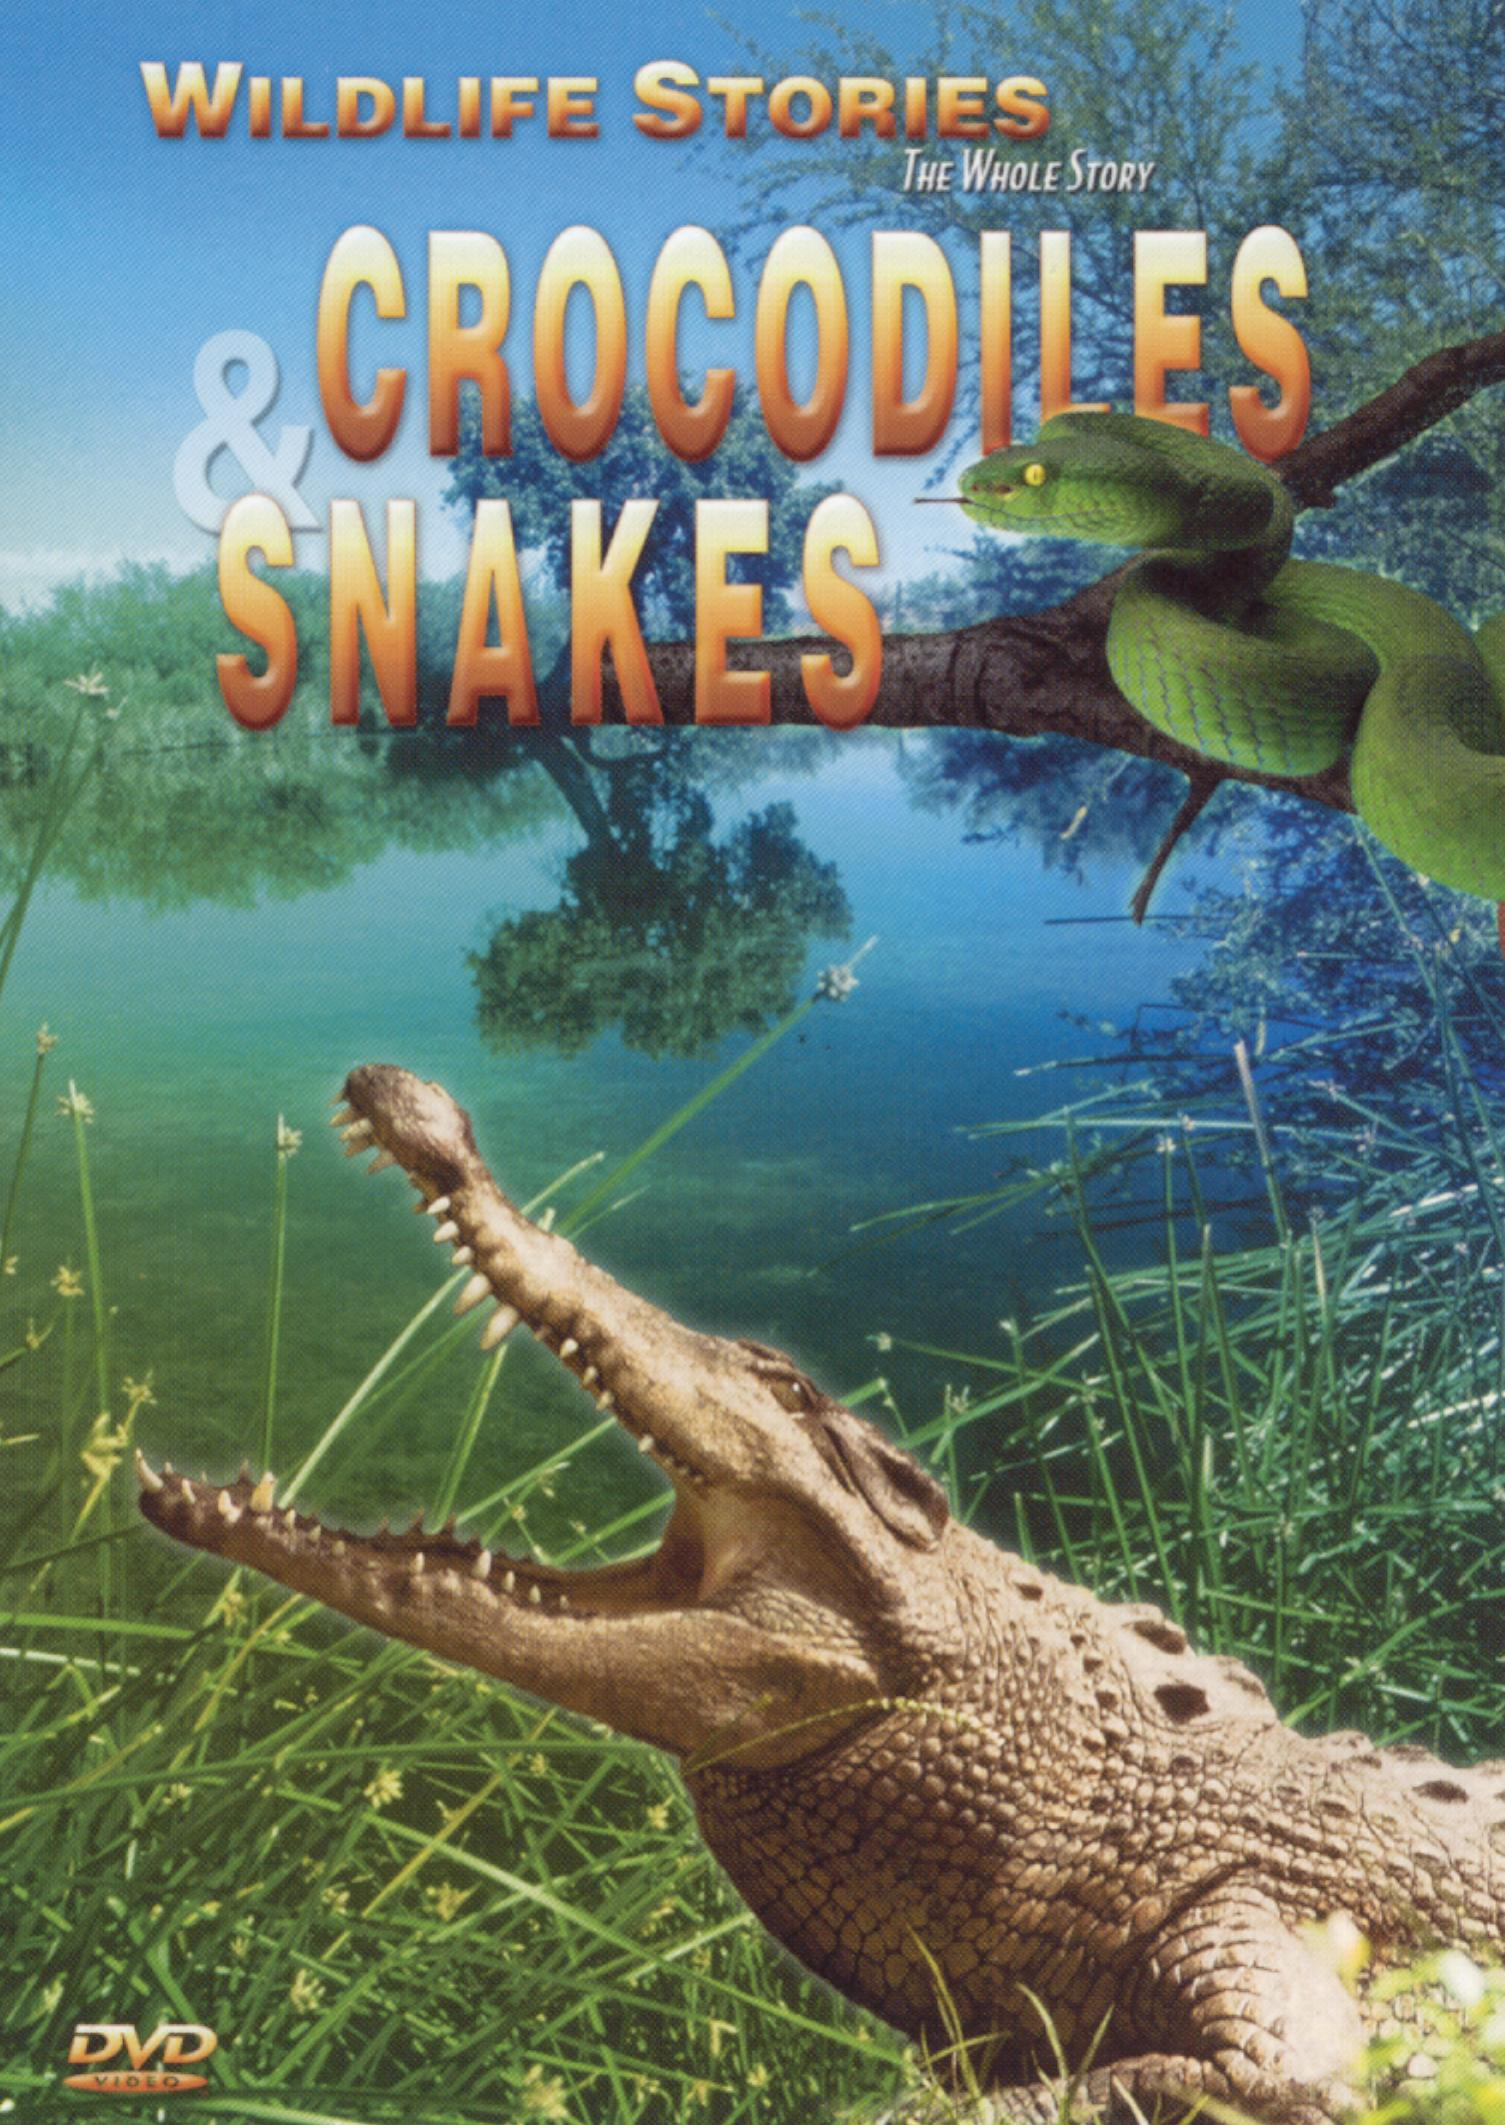 Wildlife Stories: The Whole Story - Crocodiles and Snakes